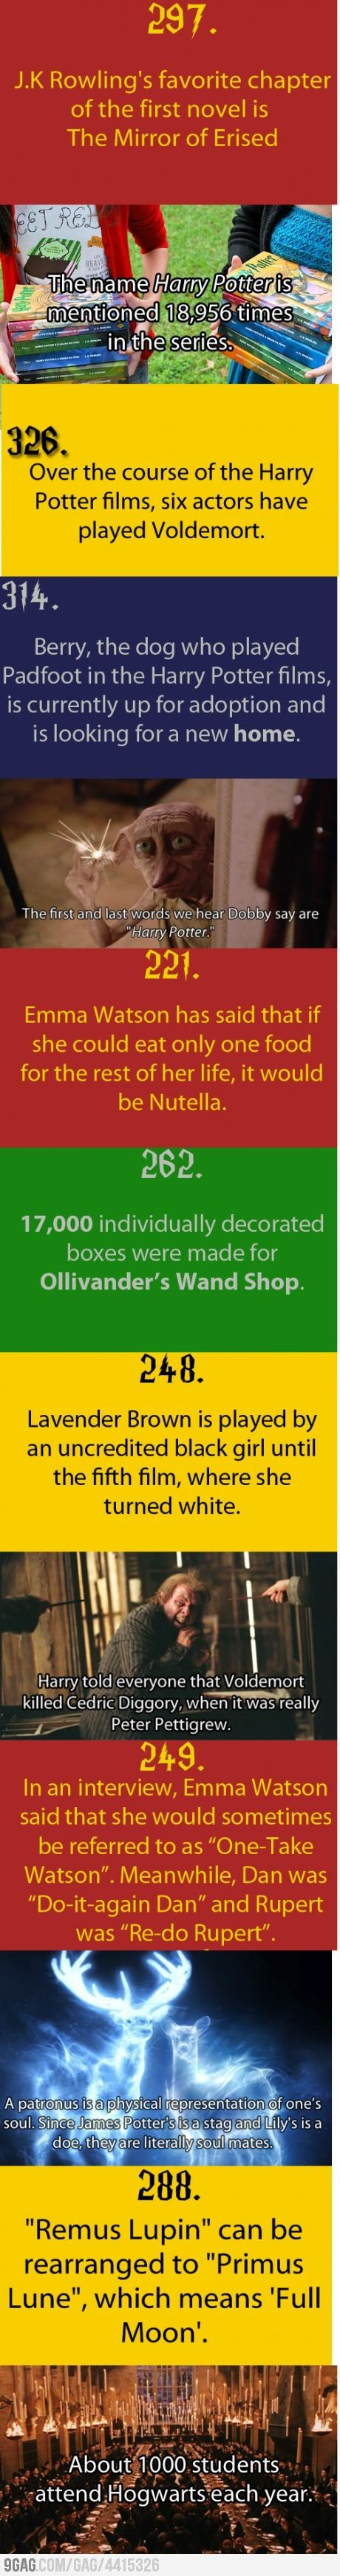 Just Some Harry Potter facts.